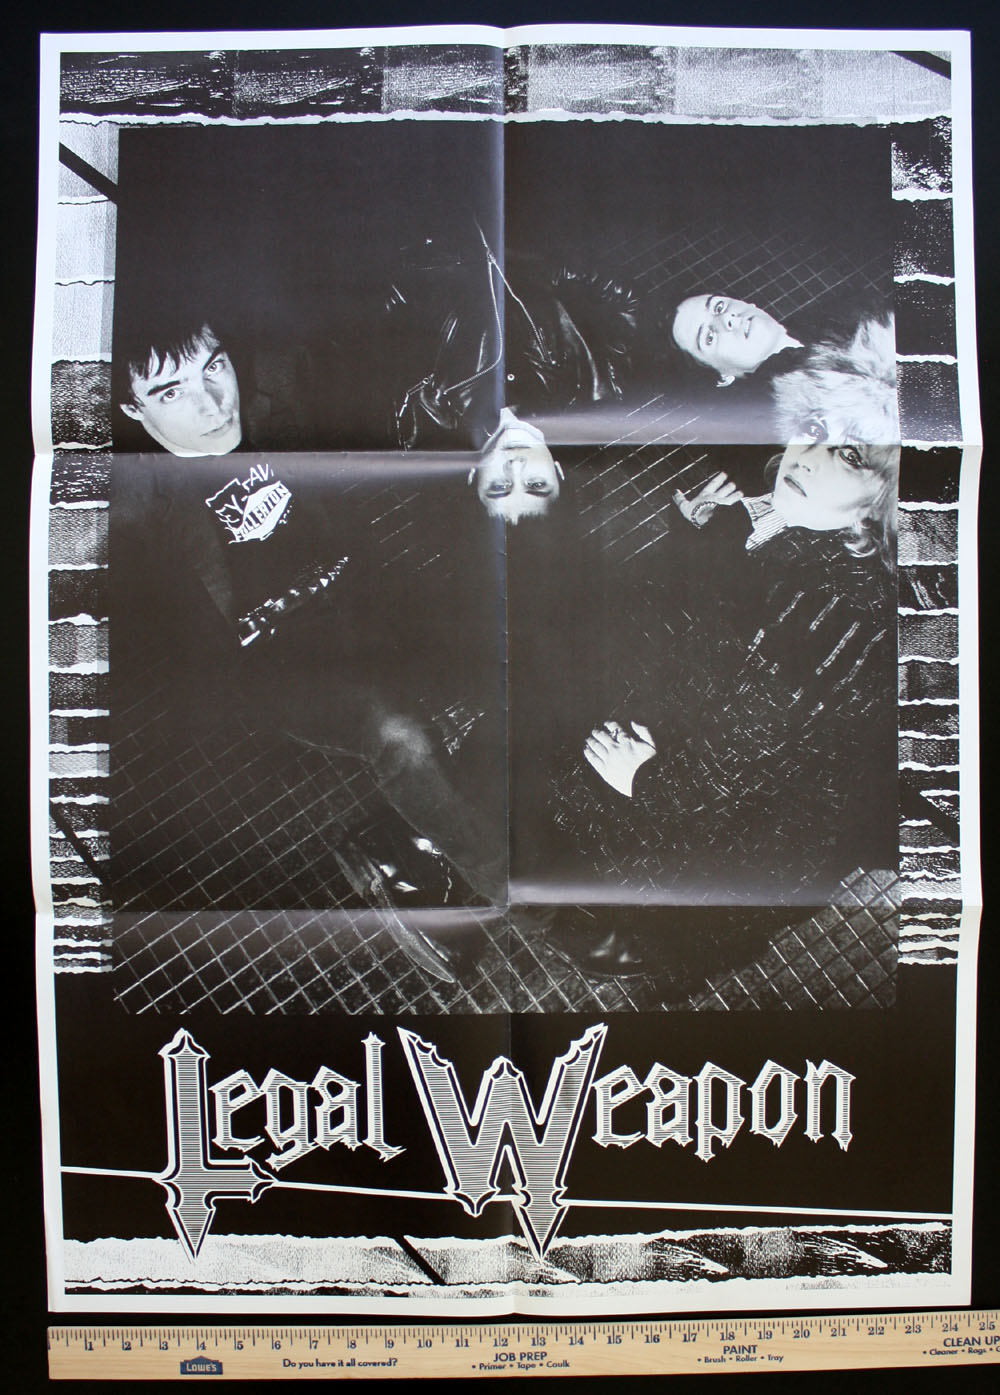 LEGAL WEAPON ~ Your Weapon LP promo POSTER